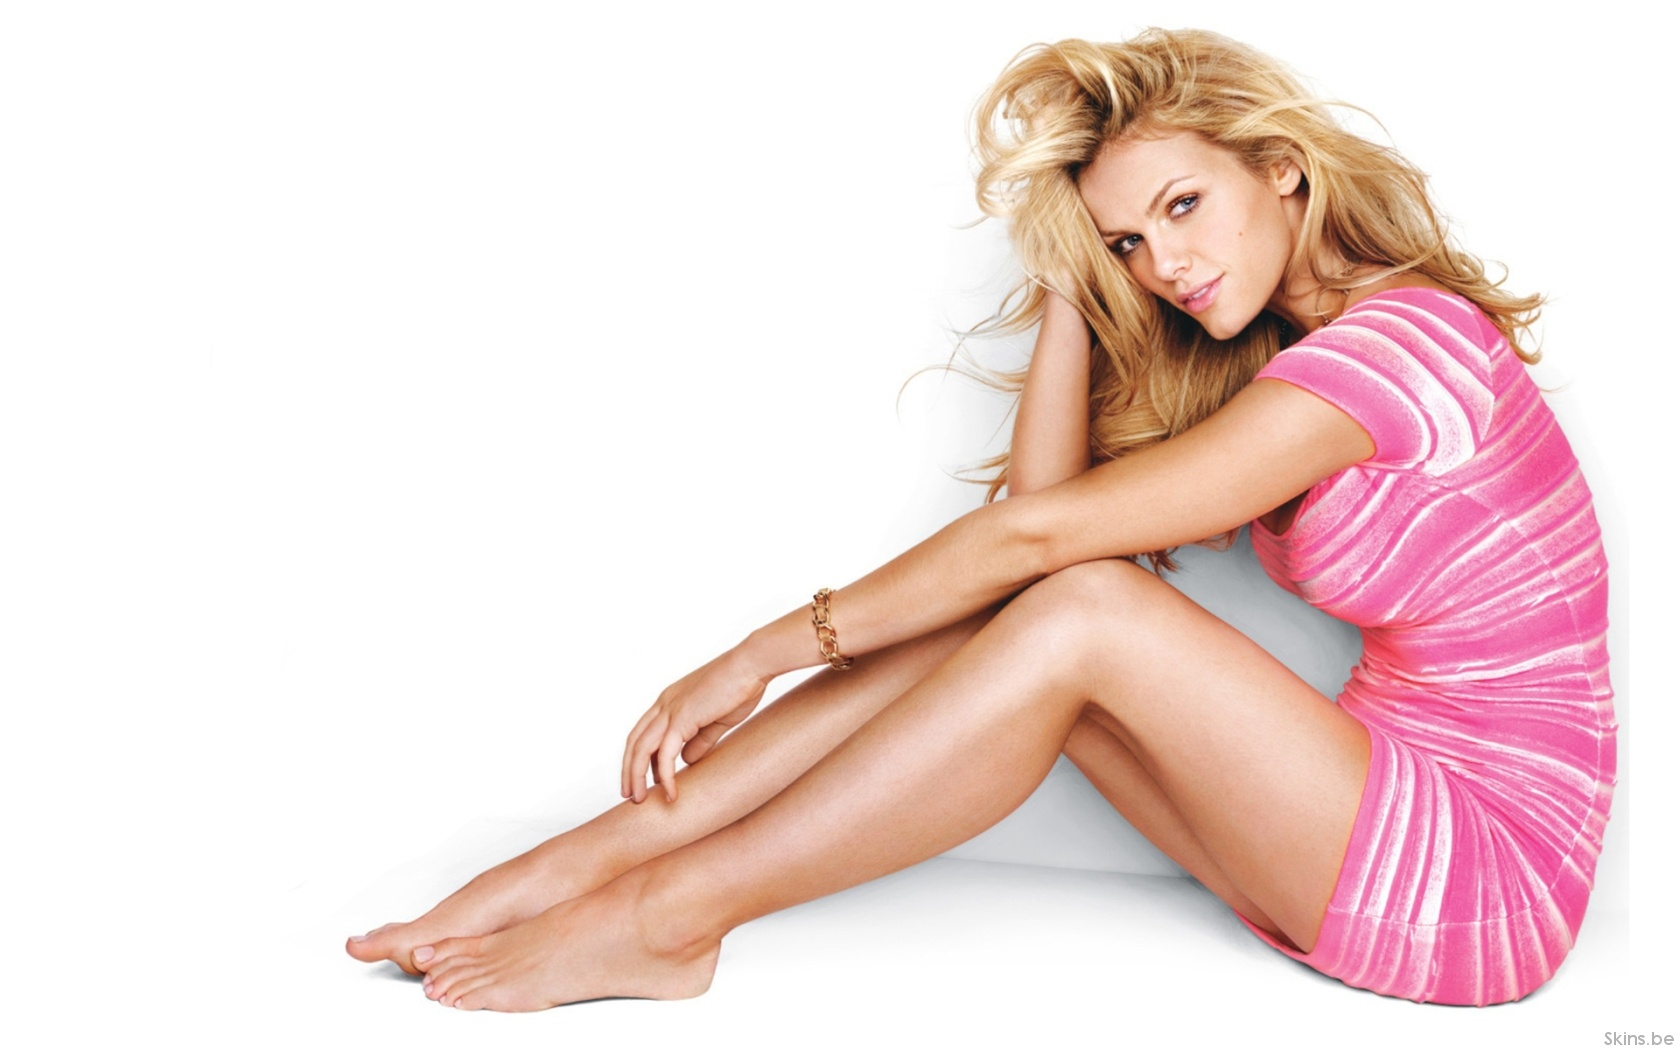 Brooklyn Decker wallpaper (#39827)